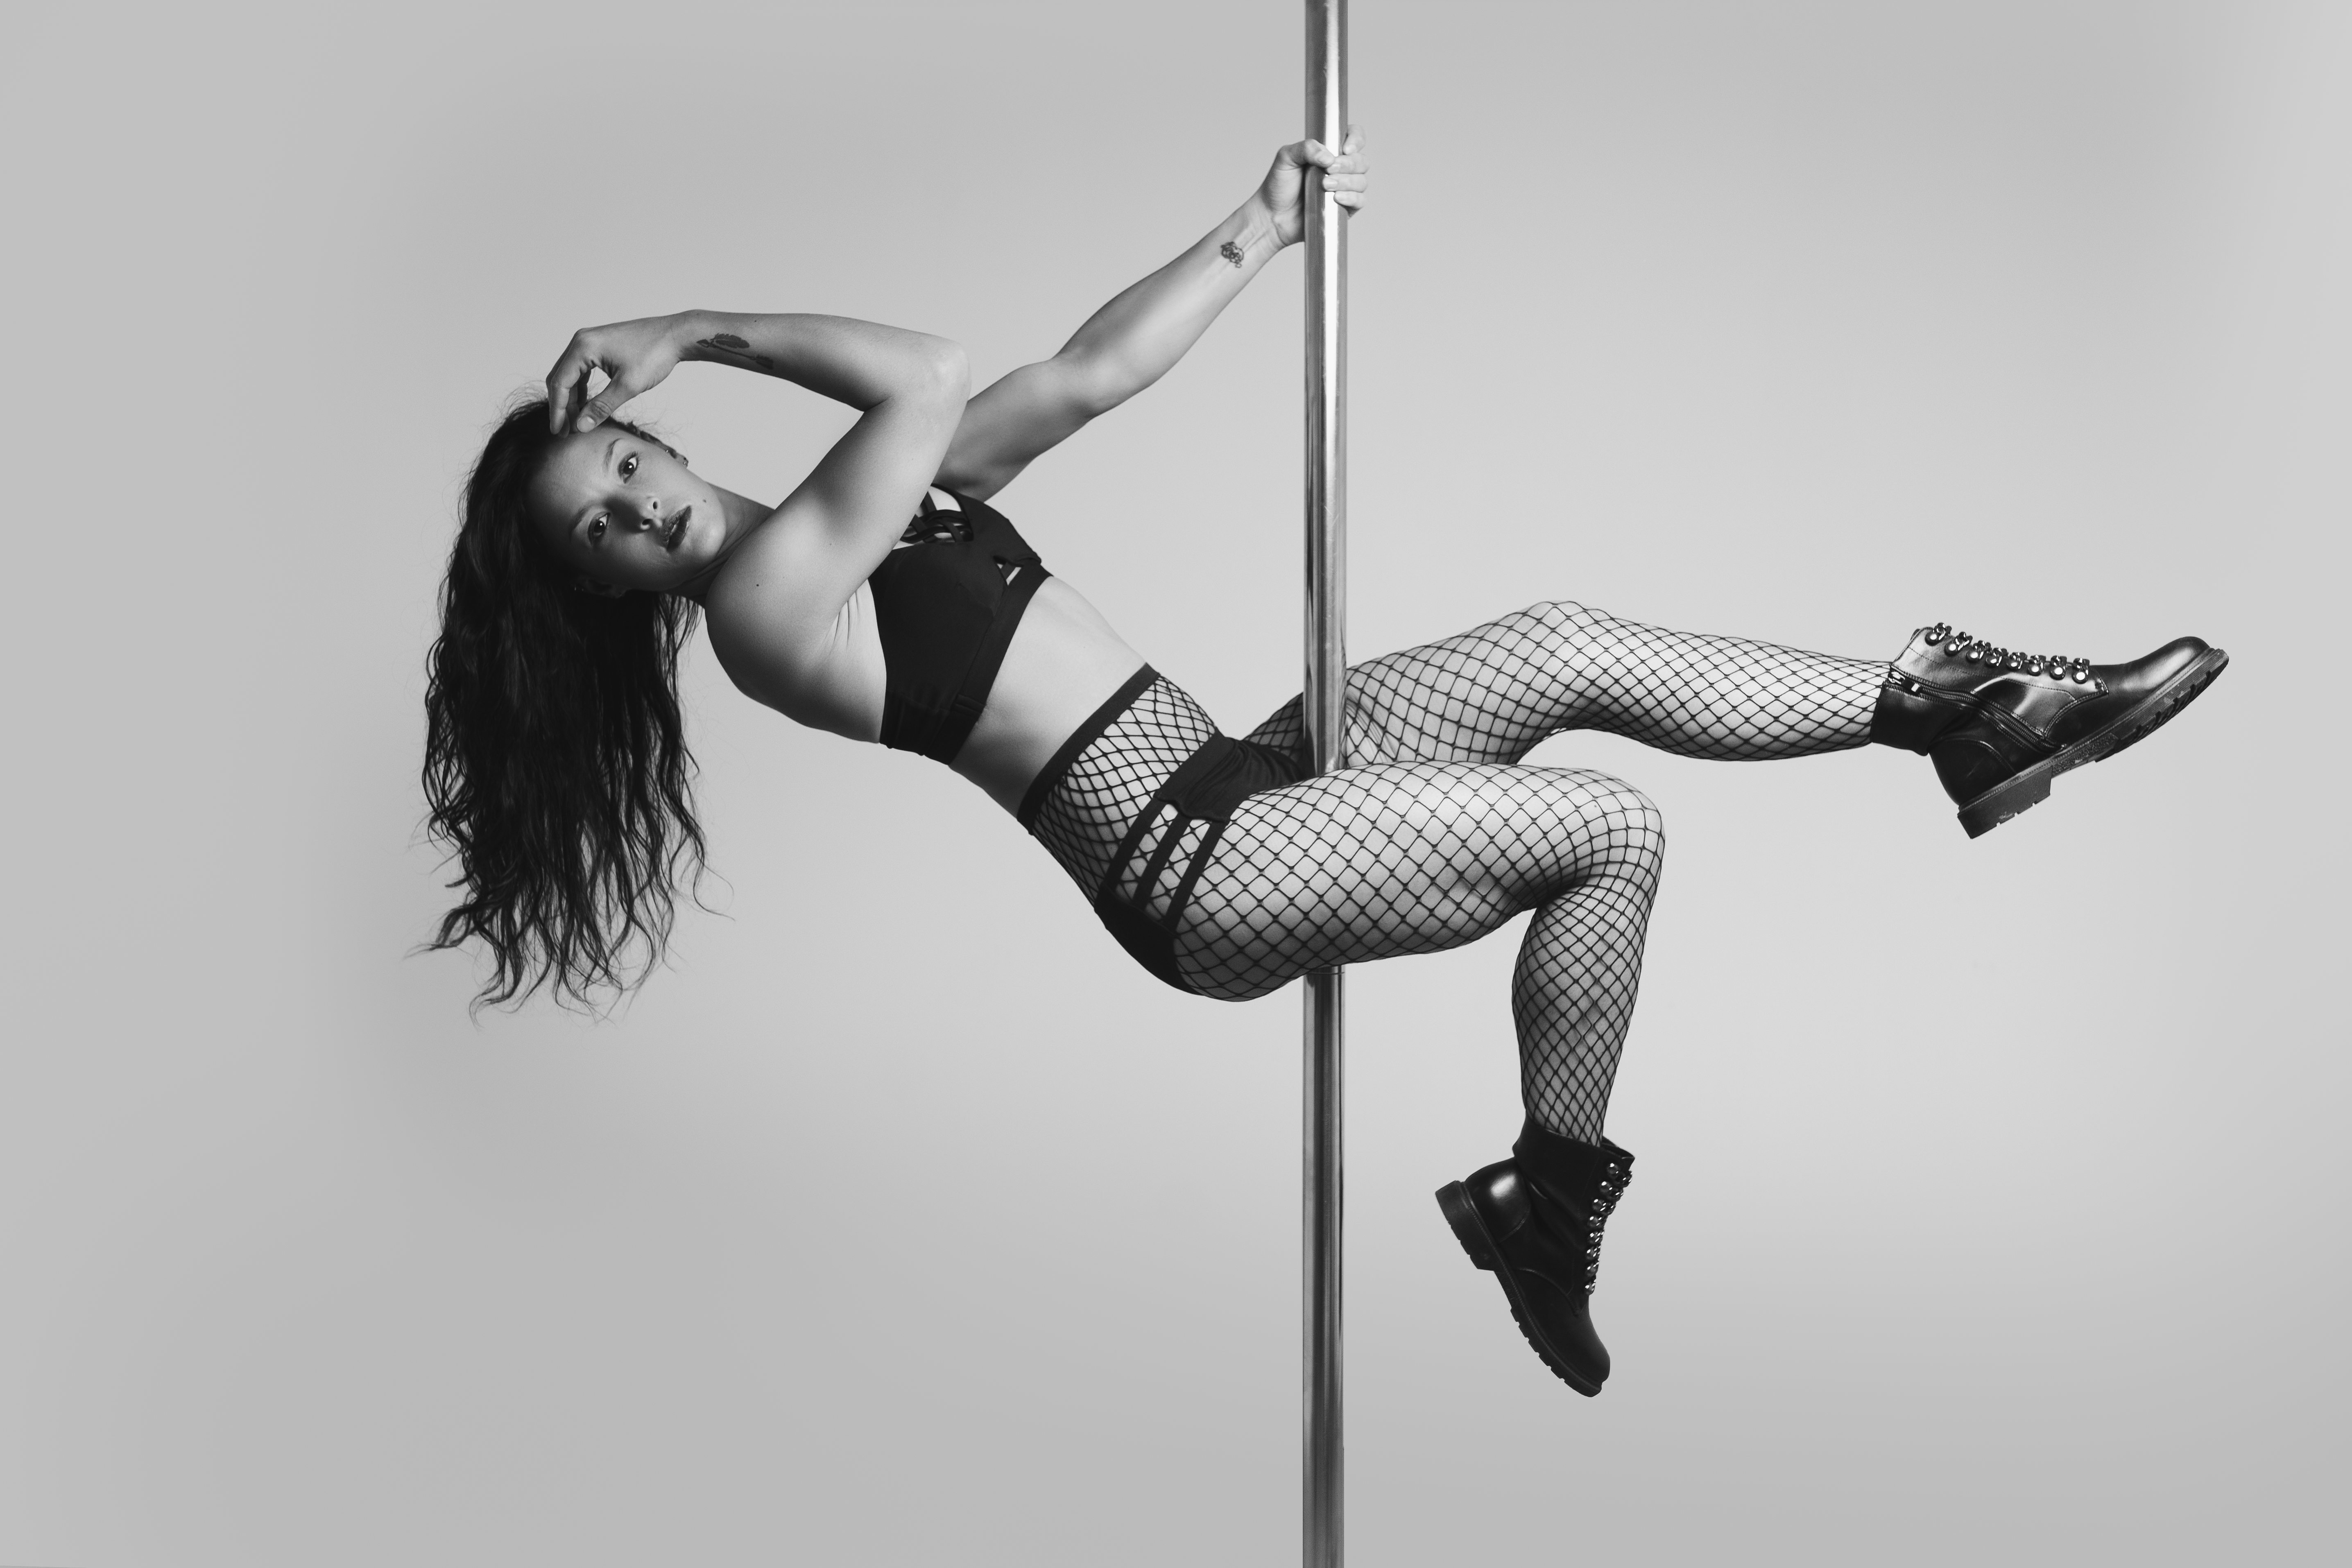 shooting pole dance séance photo laura mété pole circus nord